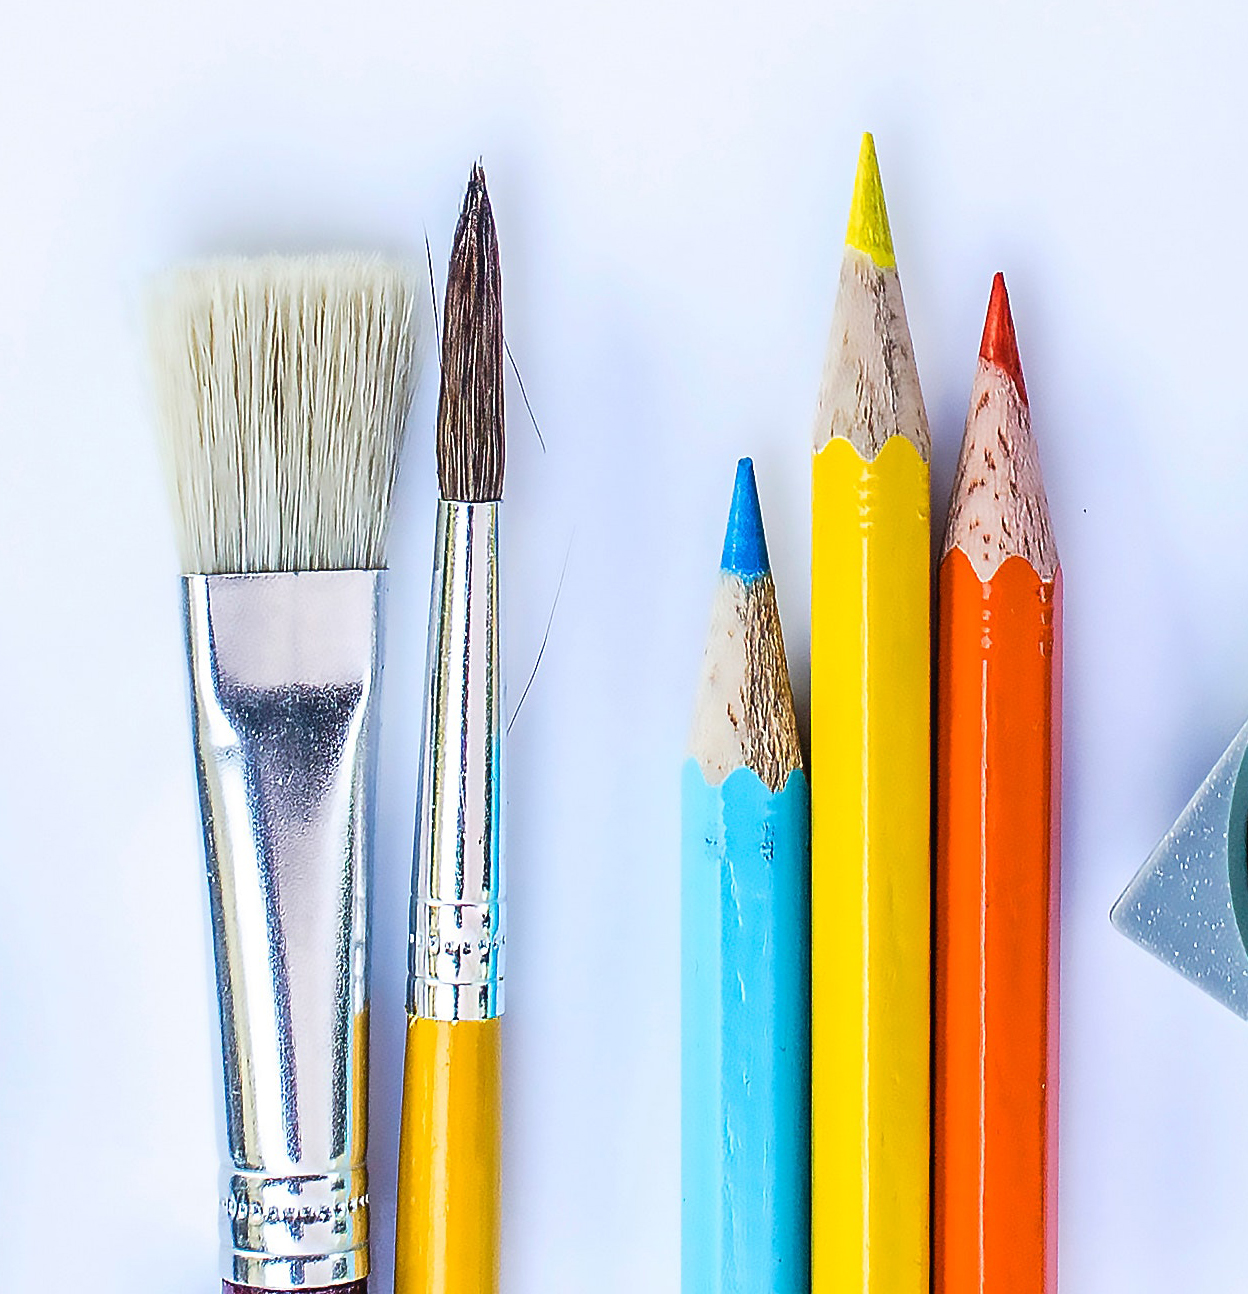 paint brushes and pencil crayons